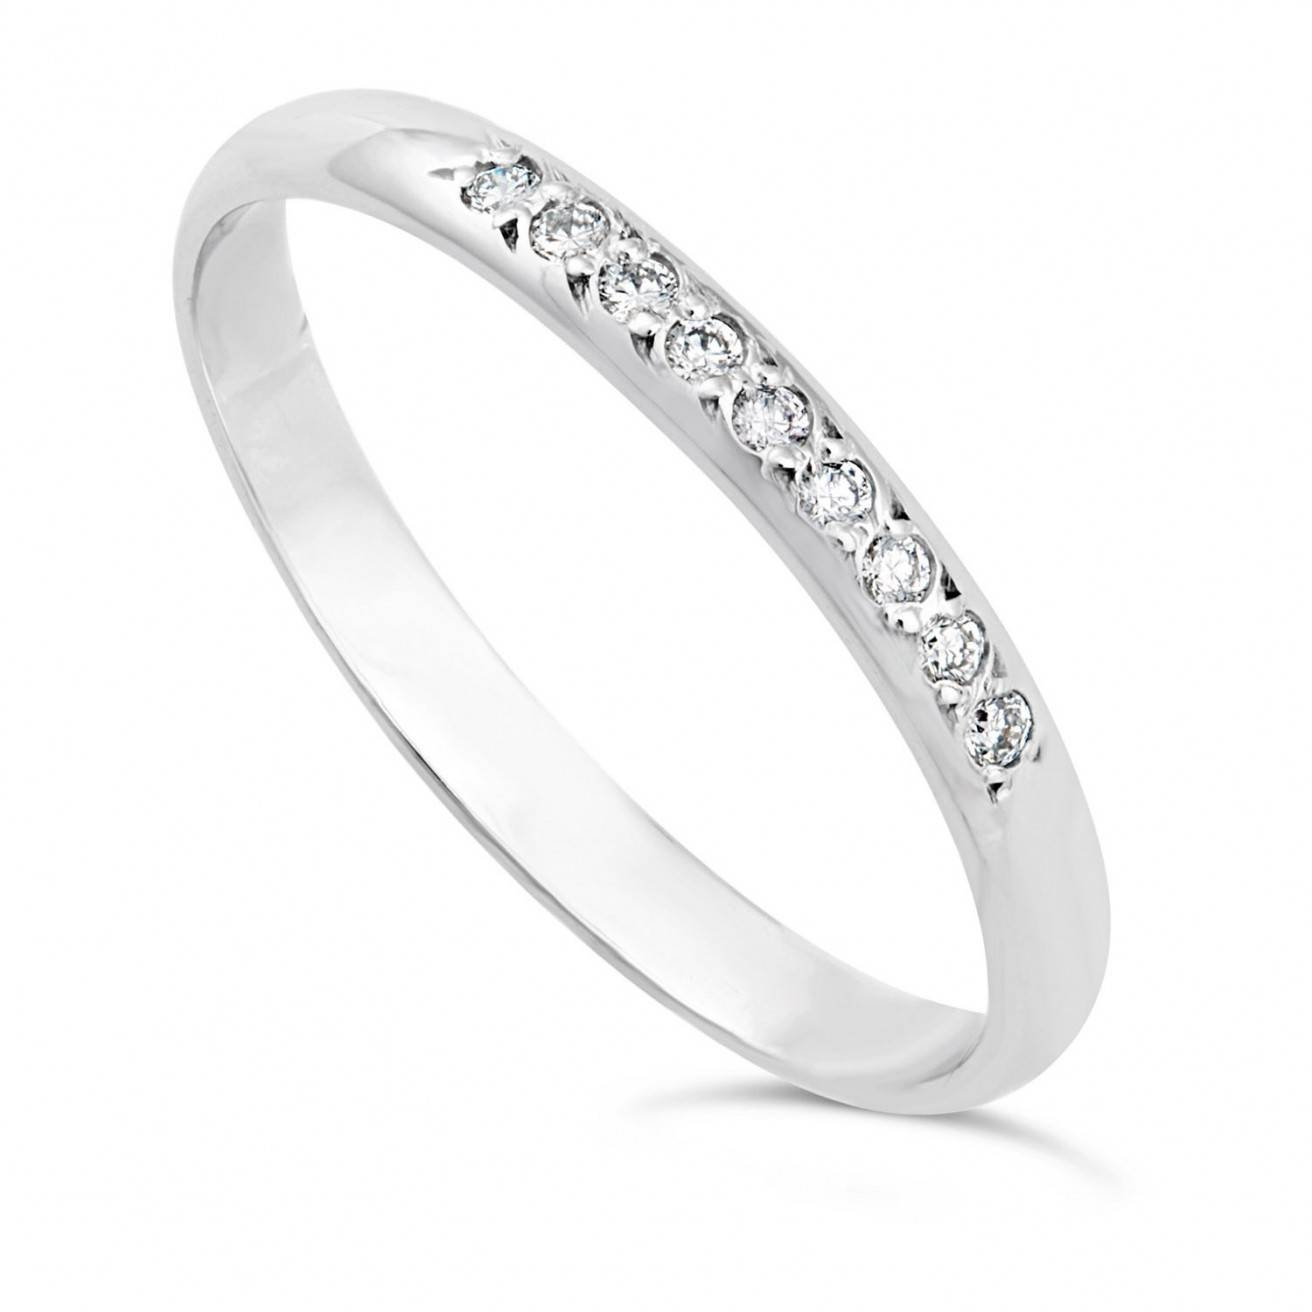 Buy Platinum Wedding Bands Online – Fraser Hart Throughout Diamond And Platinum Wedding Rings (View 7 of 15)